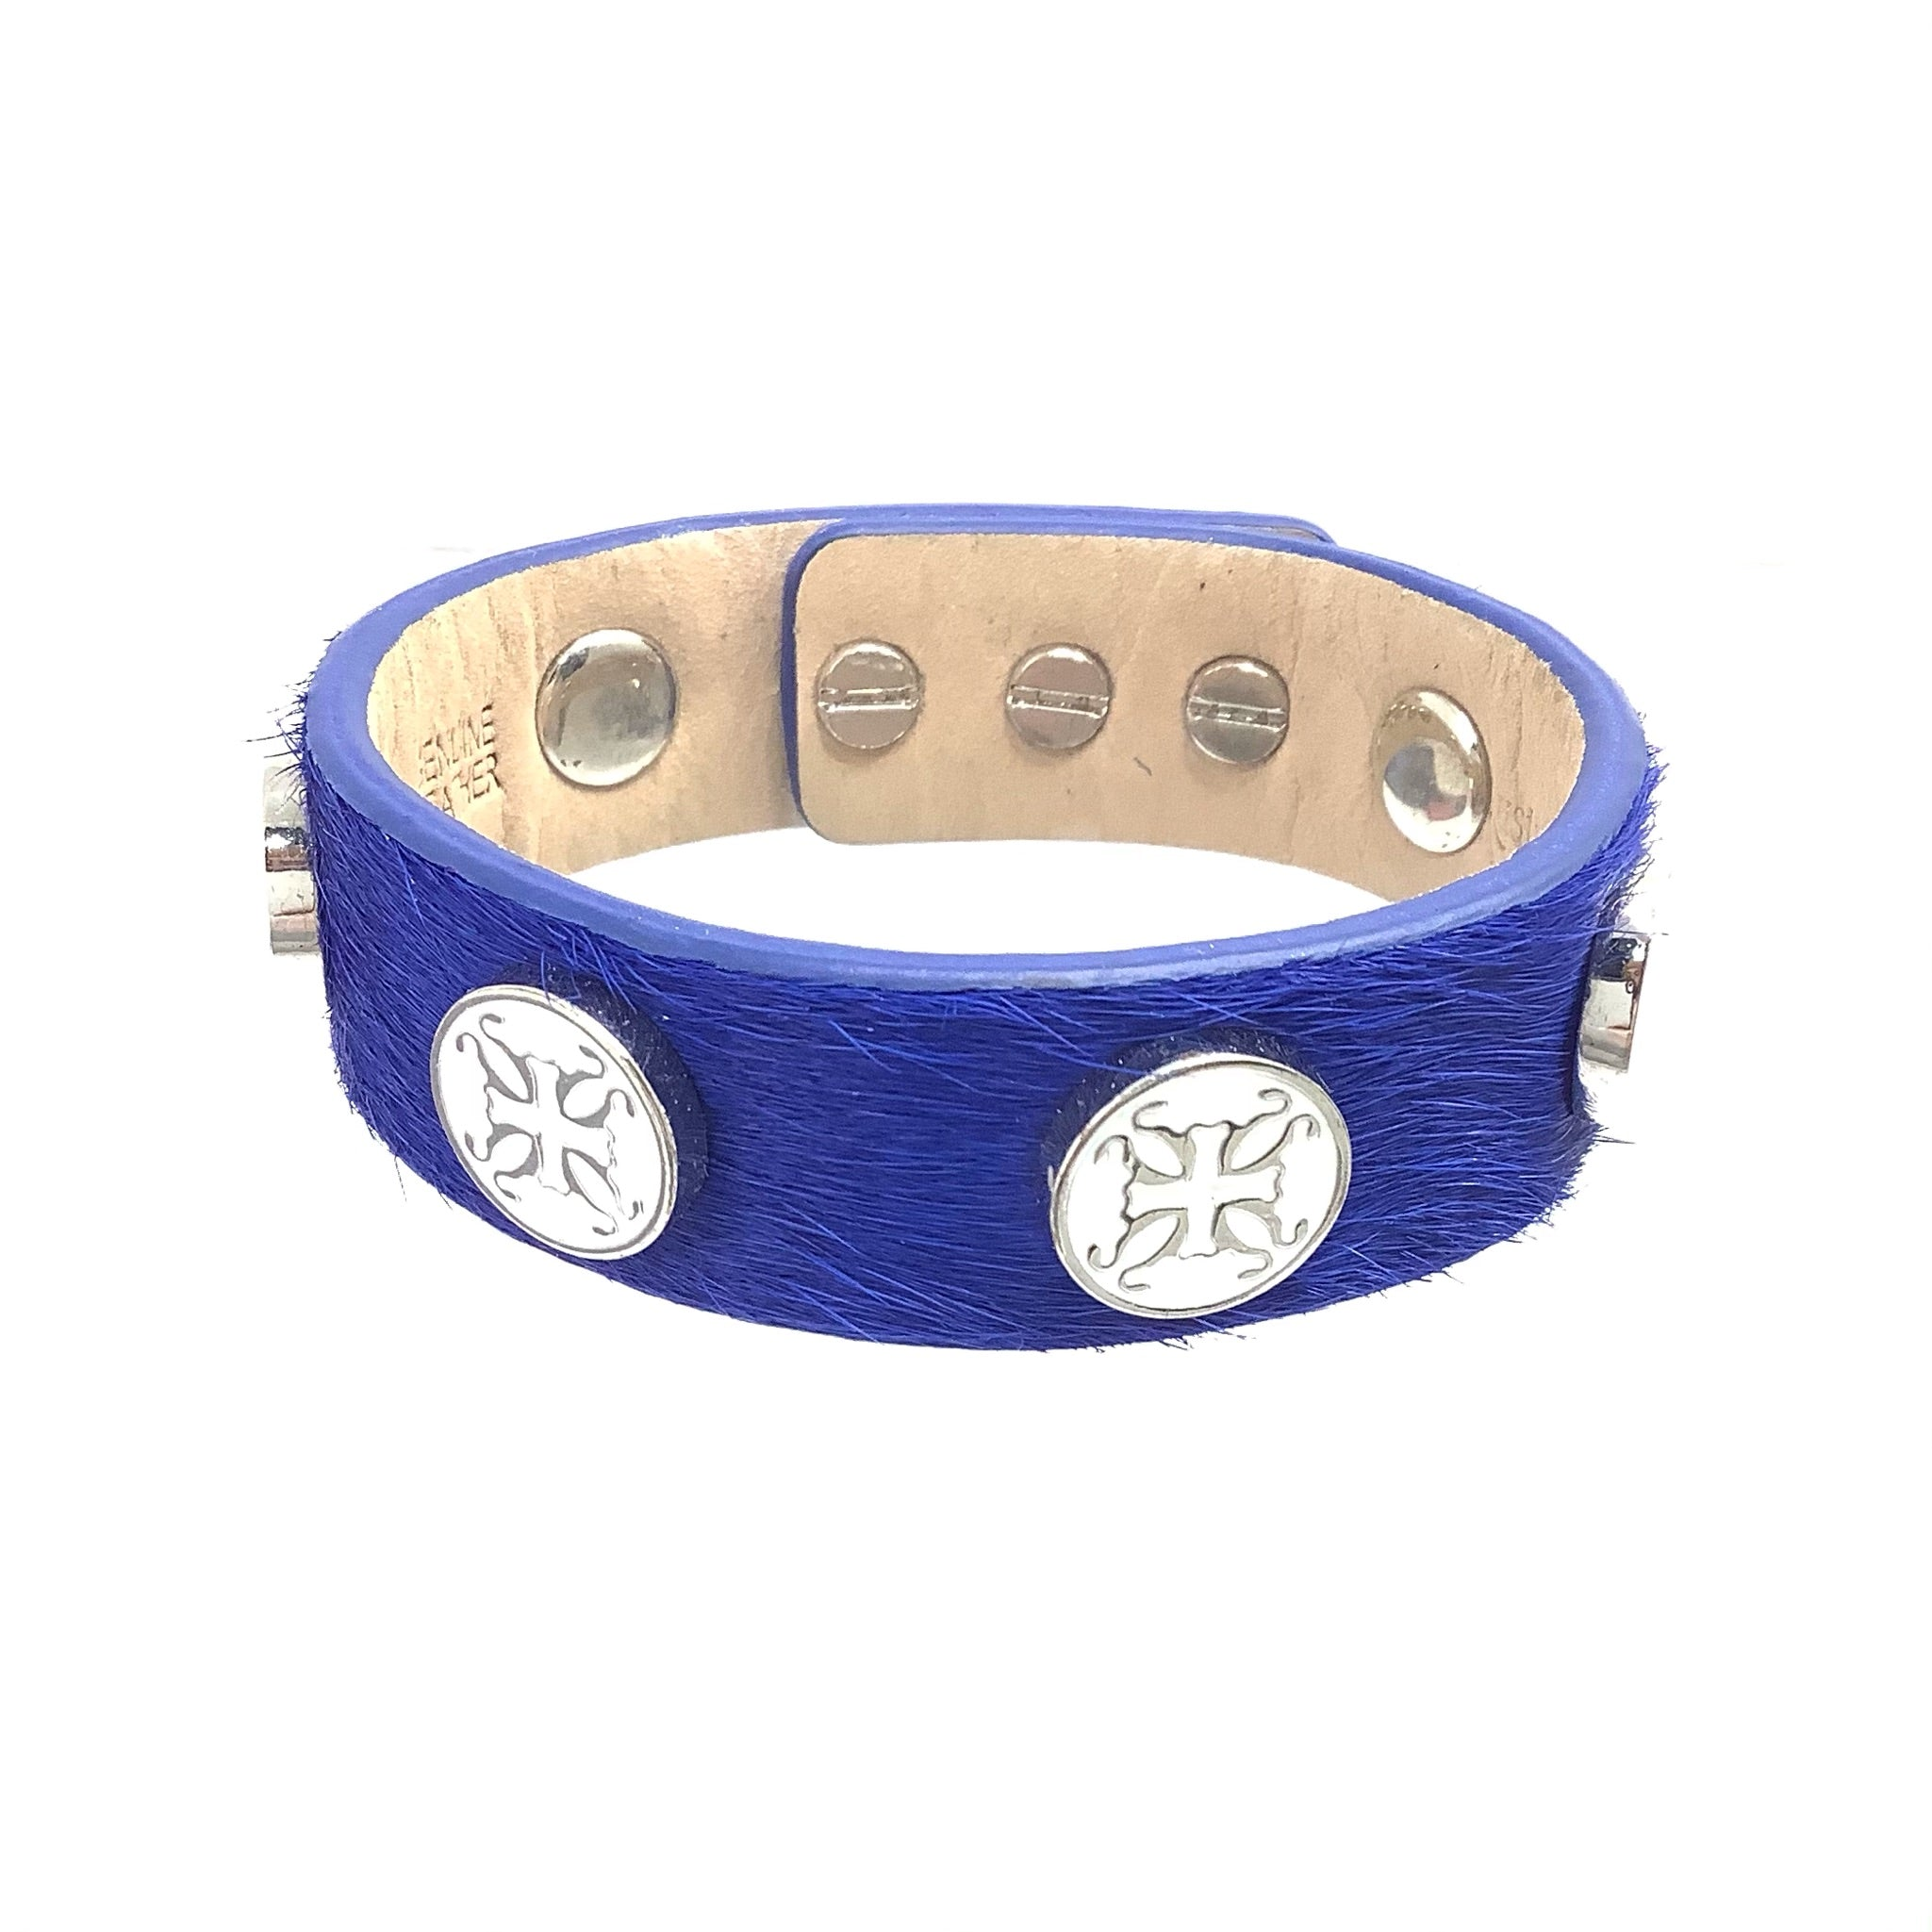 Primary Photo - BRAND: RUSTIC CUFF <BR>STYLE: BRACELET <BR>COLOR: BLUE <BR>OTHER INFO: MEGAN WIDE CALF HAIR CUFF <BR>SKU: 258-258113-6854